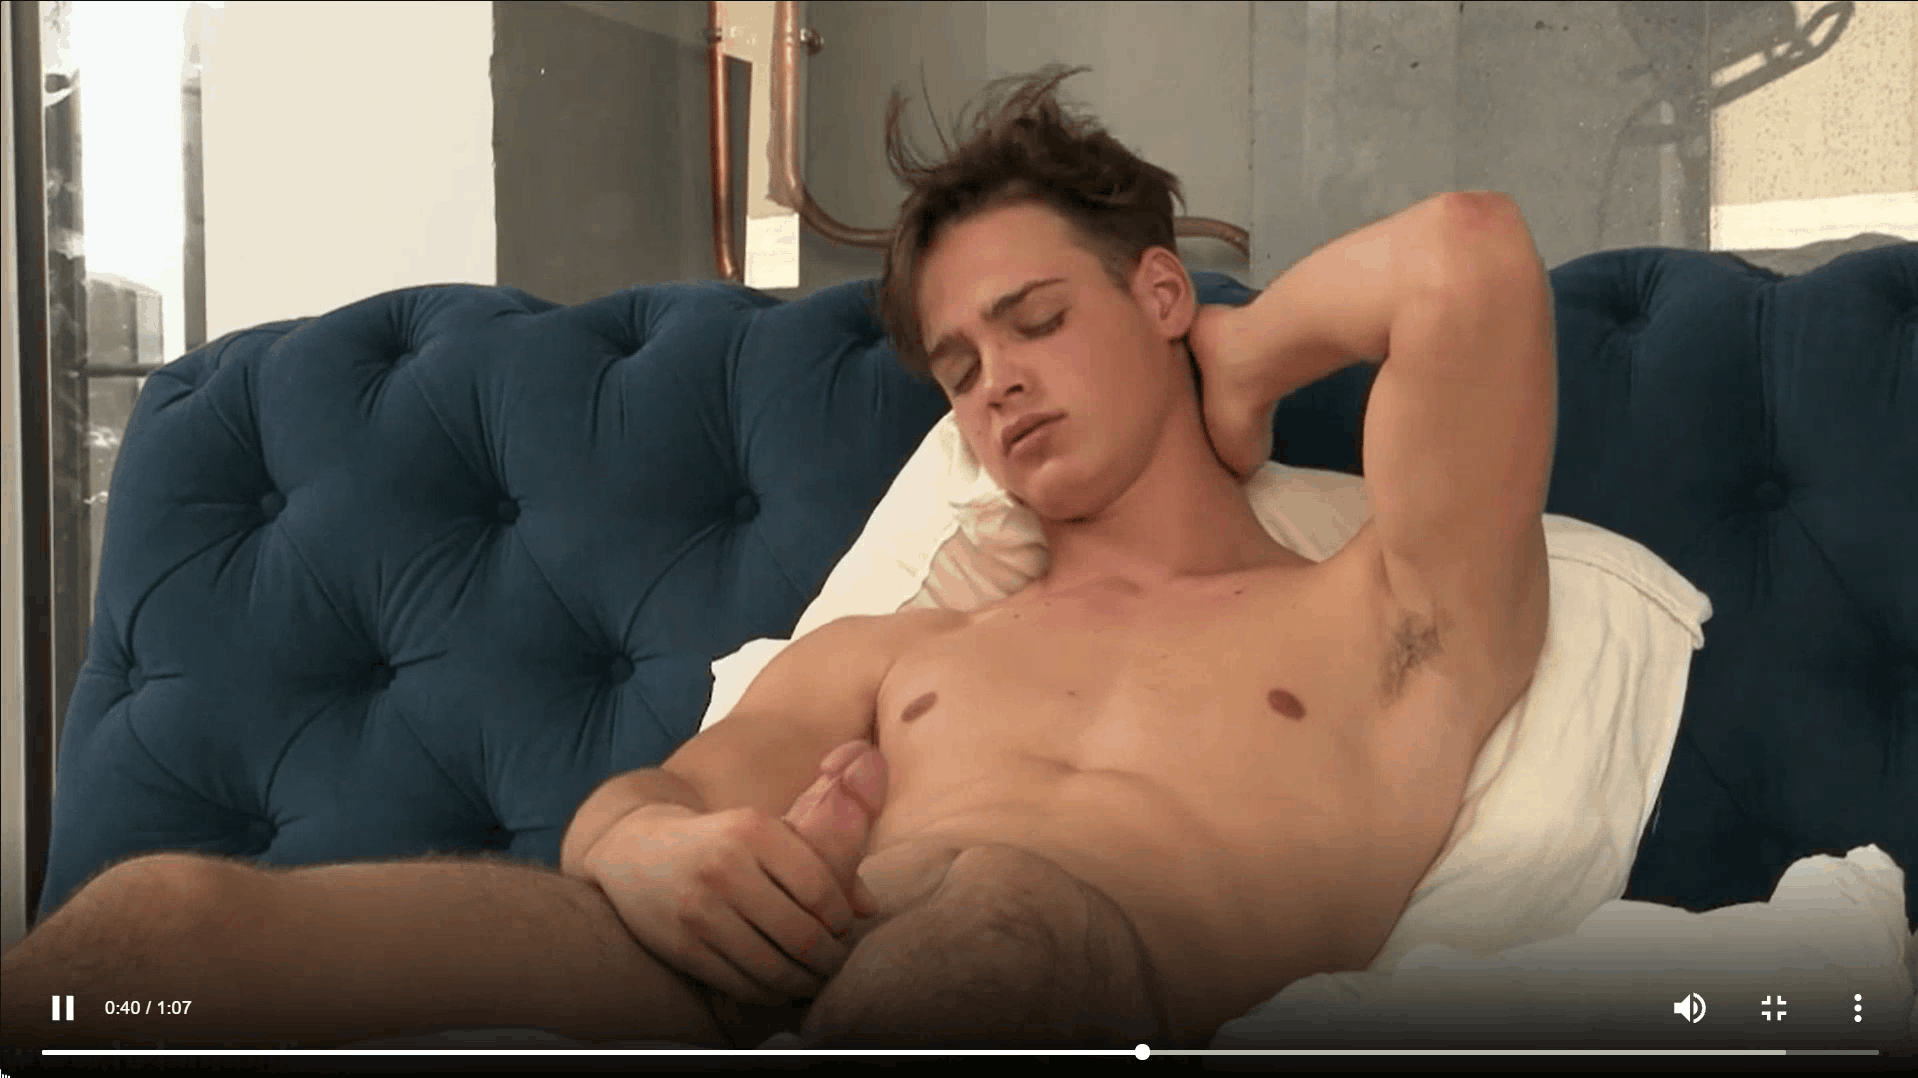 Sexy dark haired young twink Pascal Mauri steps out of the shower stroking big thick uncut dick 20 gay porn pics - Sexy dark haired young twink Pascal Mauri steps out of the shower stroking his big thick uncut dick